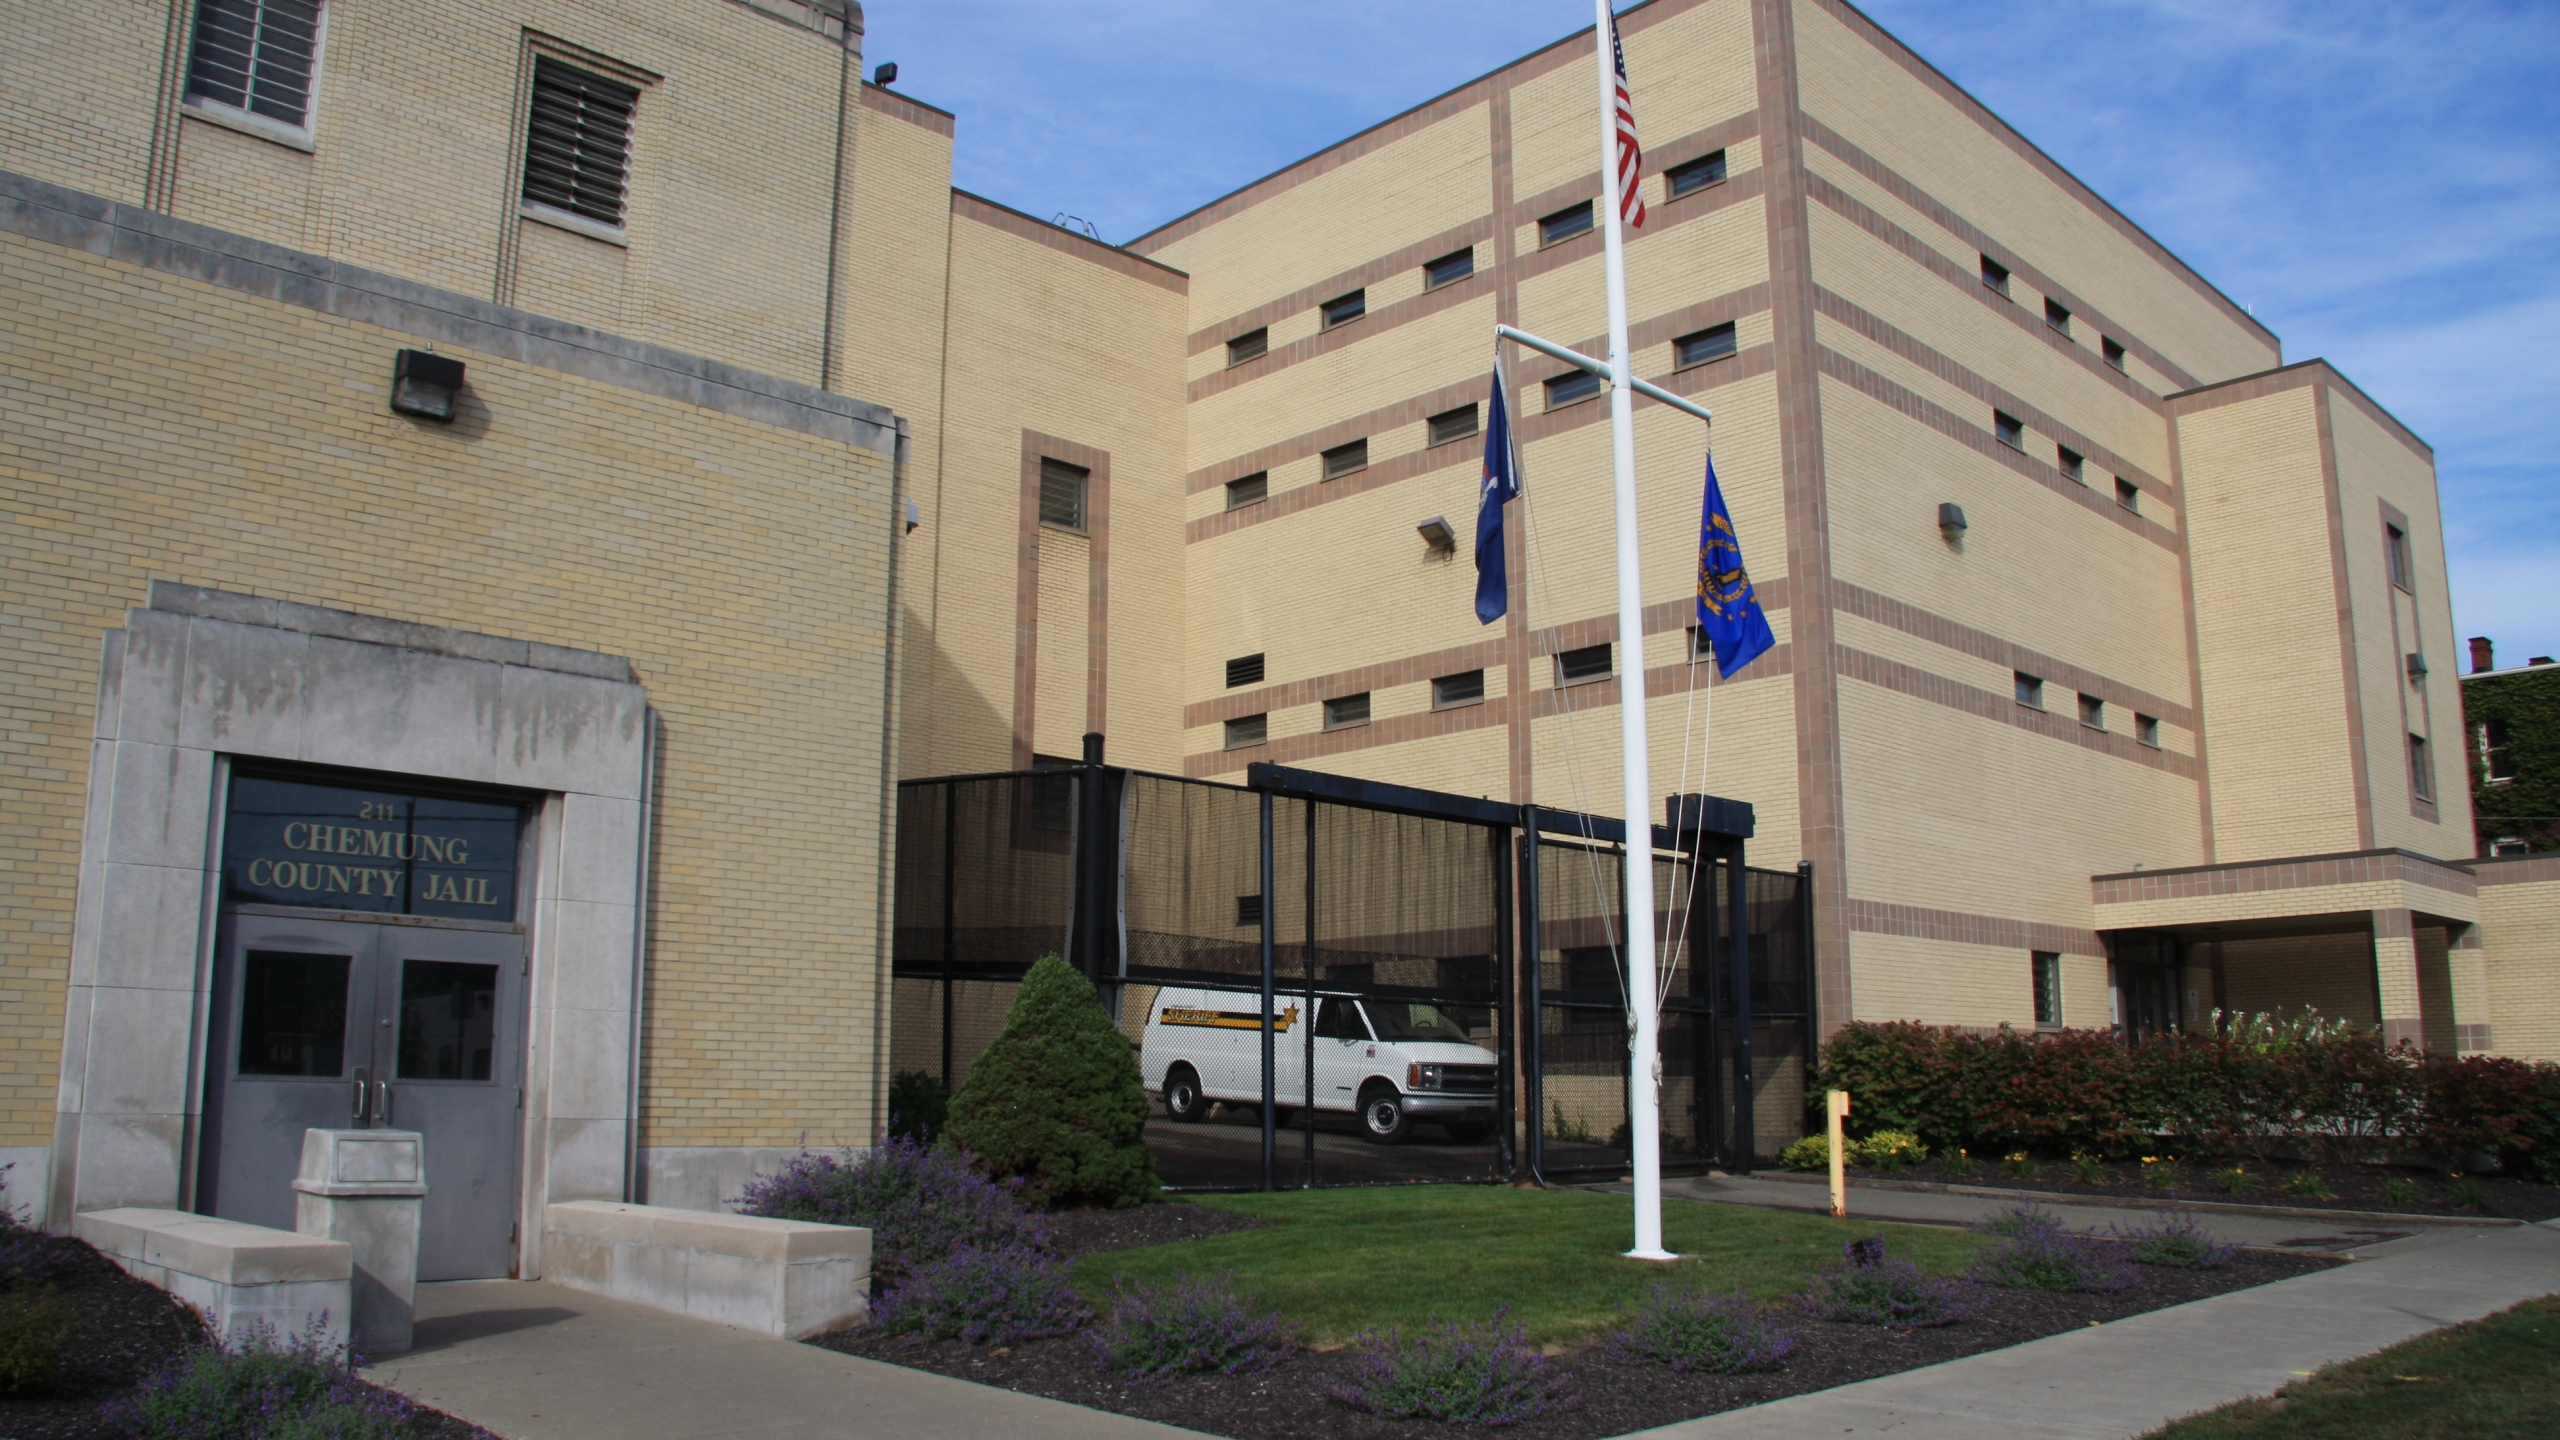 chemung county jail_1546995975557.jpg.jpg